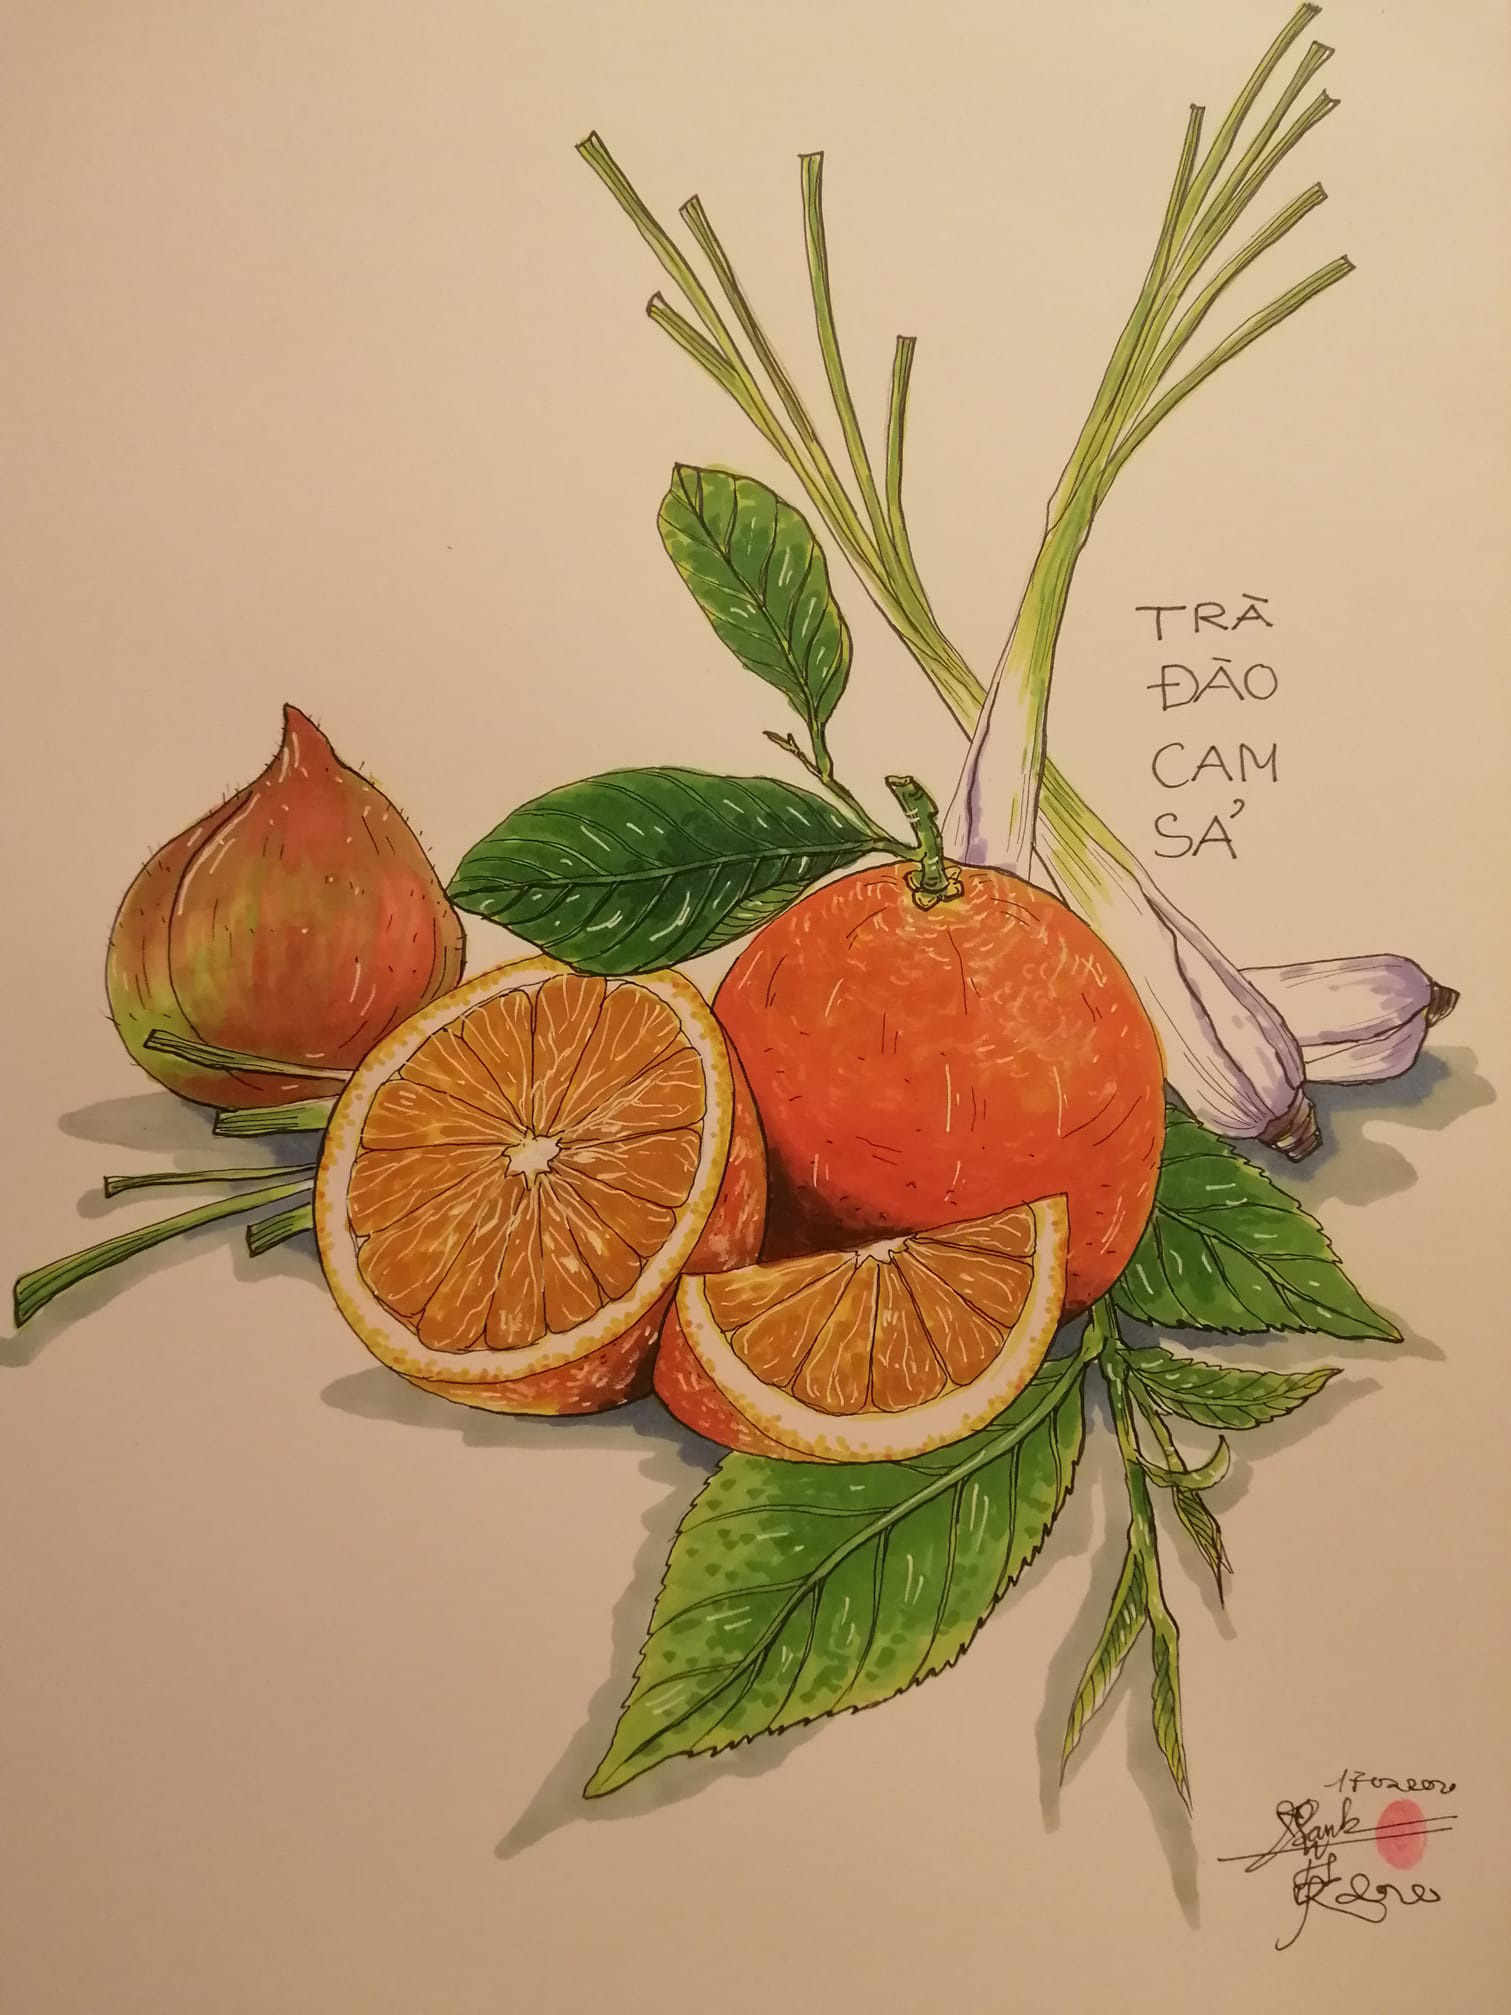 Luong Vu Lan Anh's sketch is meant to encourages people to consume more tea, peaches, oranges and lemongrass, all rich vitamin C, in order to improve the immune systems.